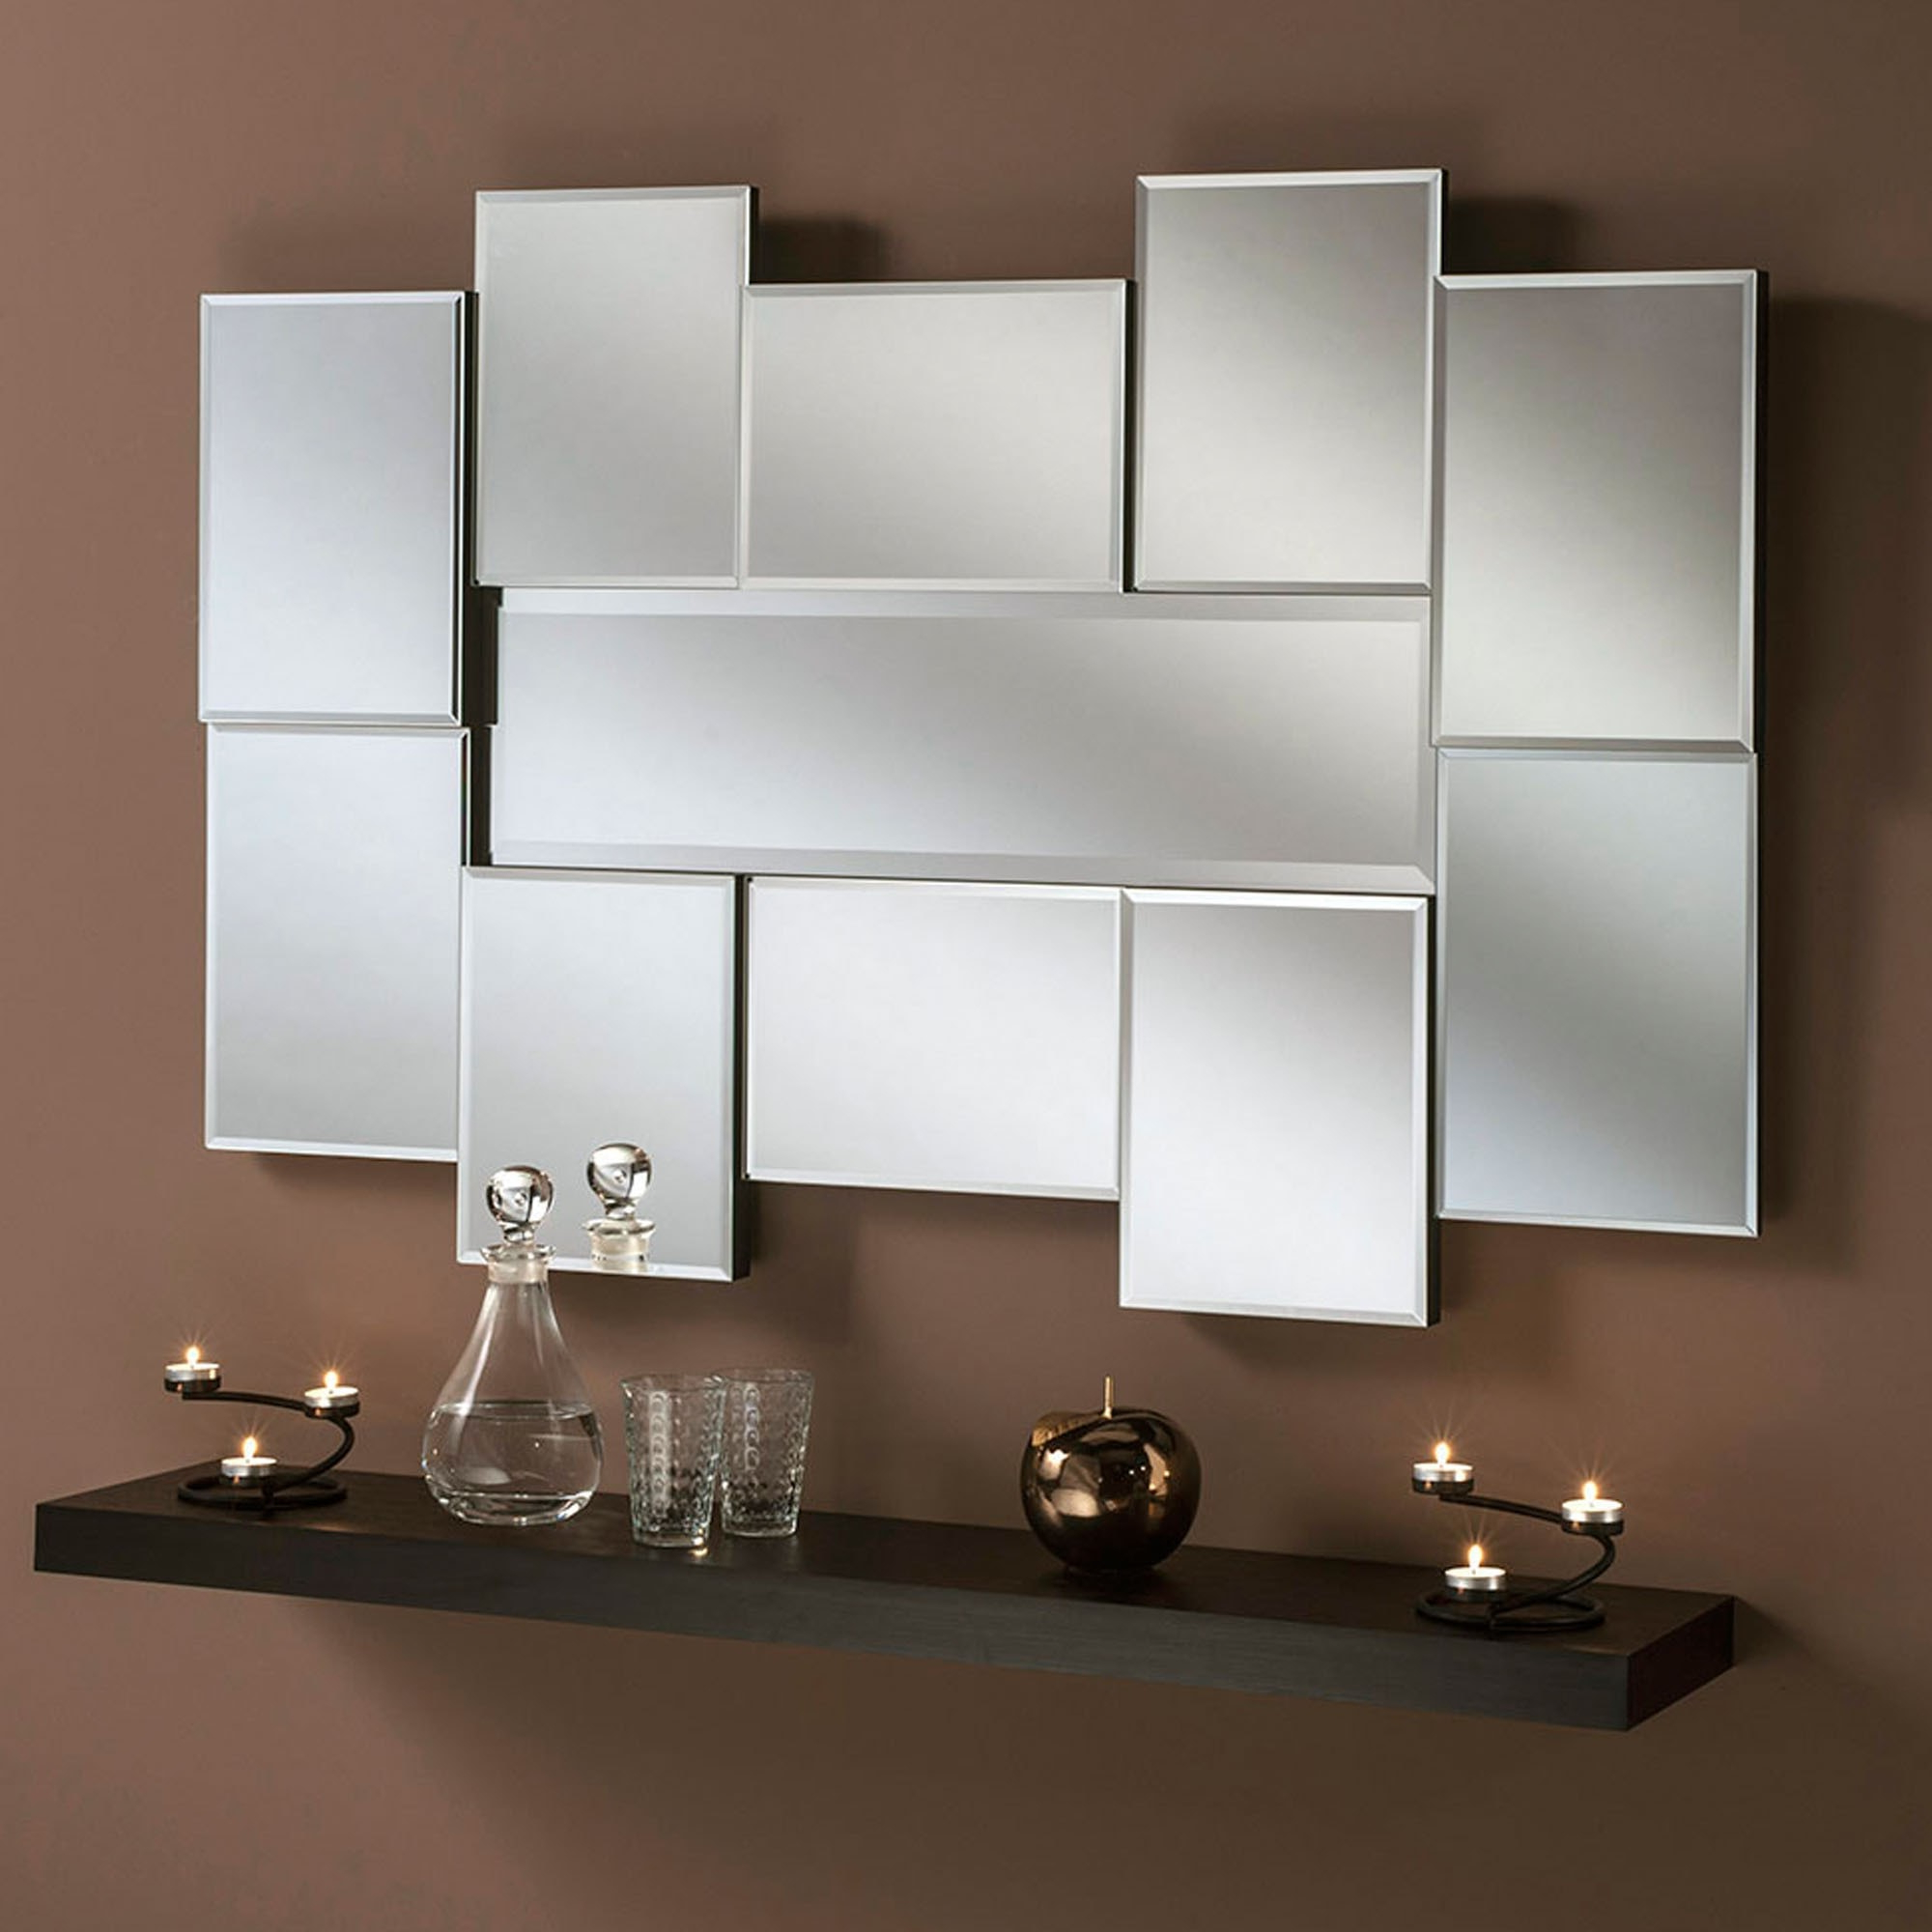 2020 Deco Wall Mirrors For Art Deco Abstract Panel Wall Mirror (View 4 of 20)